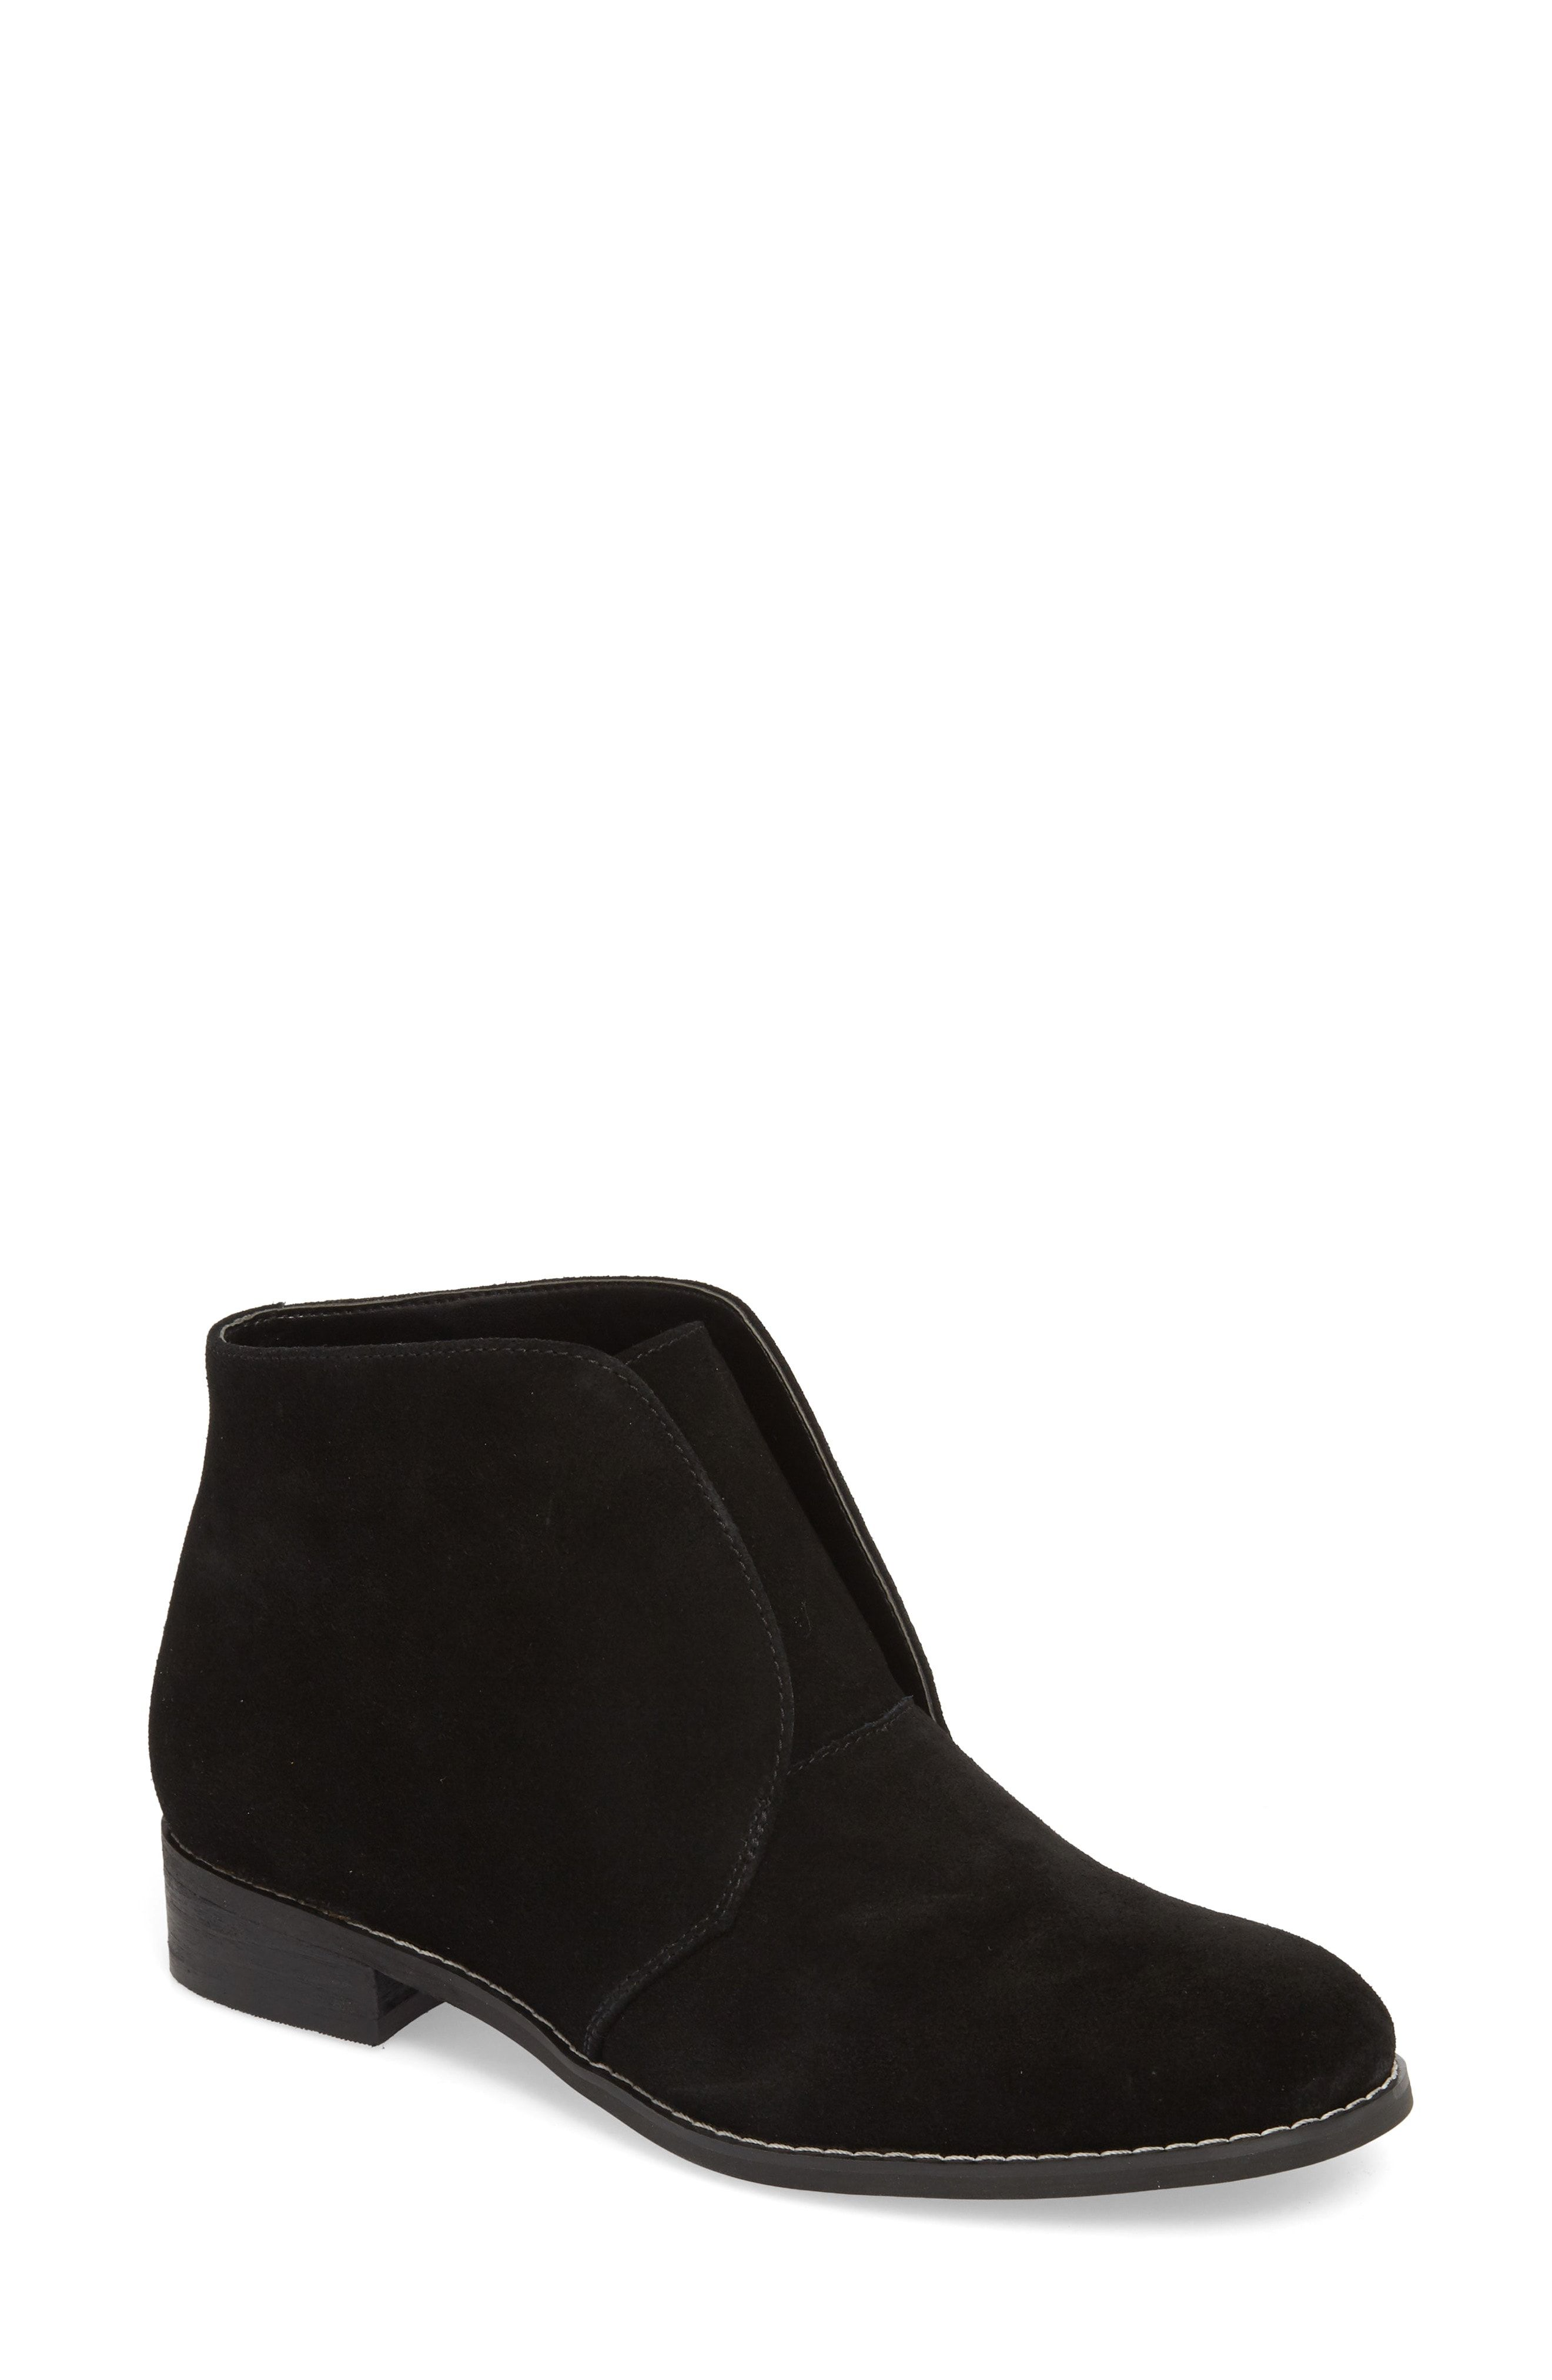 b32d5479d8e Blondo Verona Waterproof Bootie available at  Nordstrom